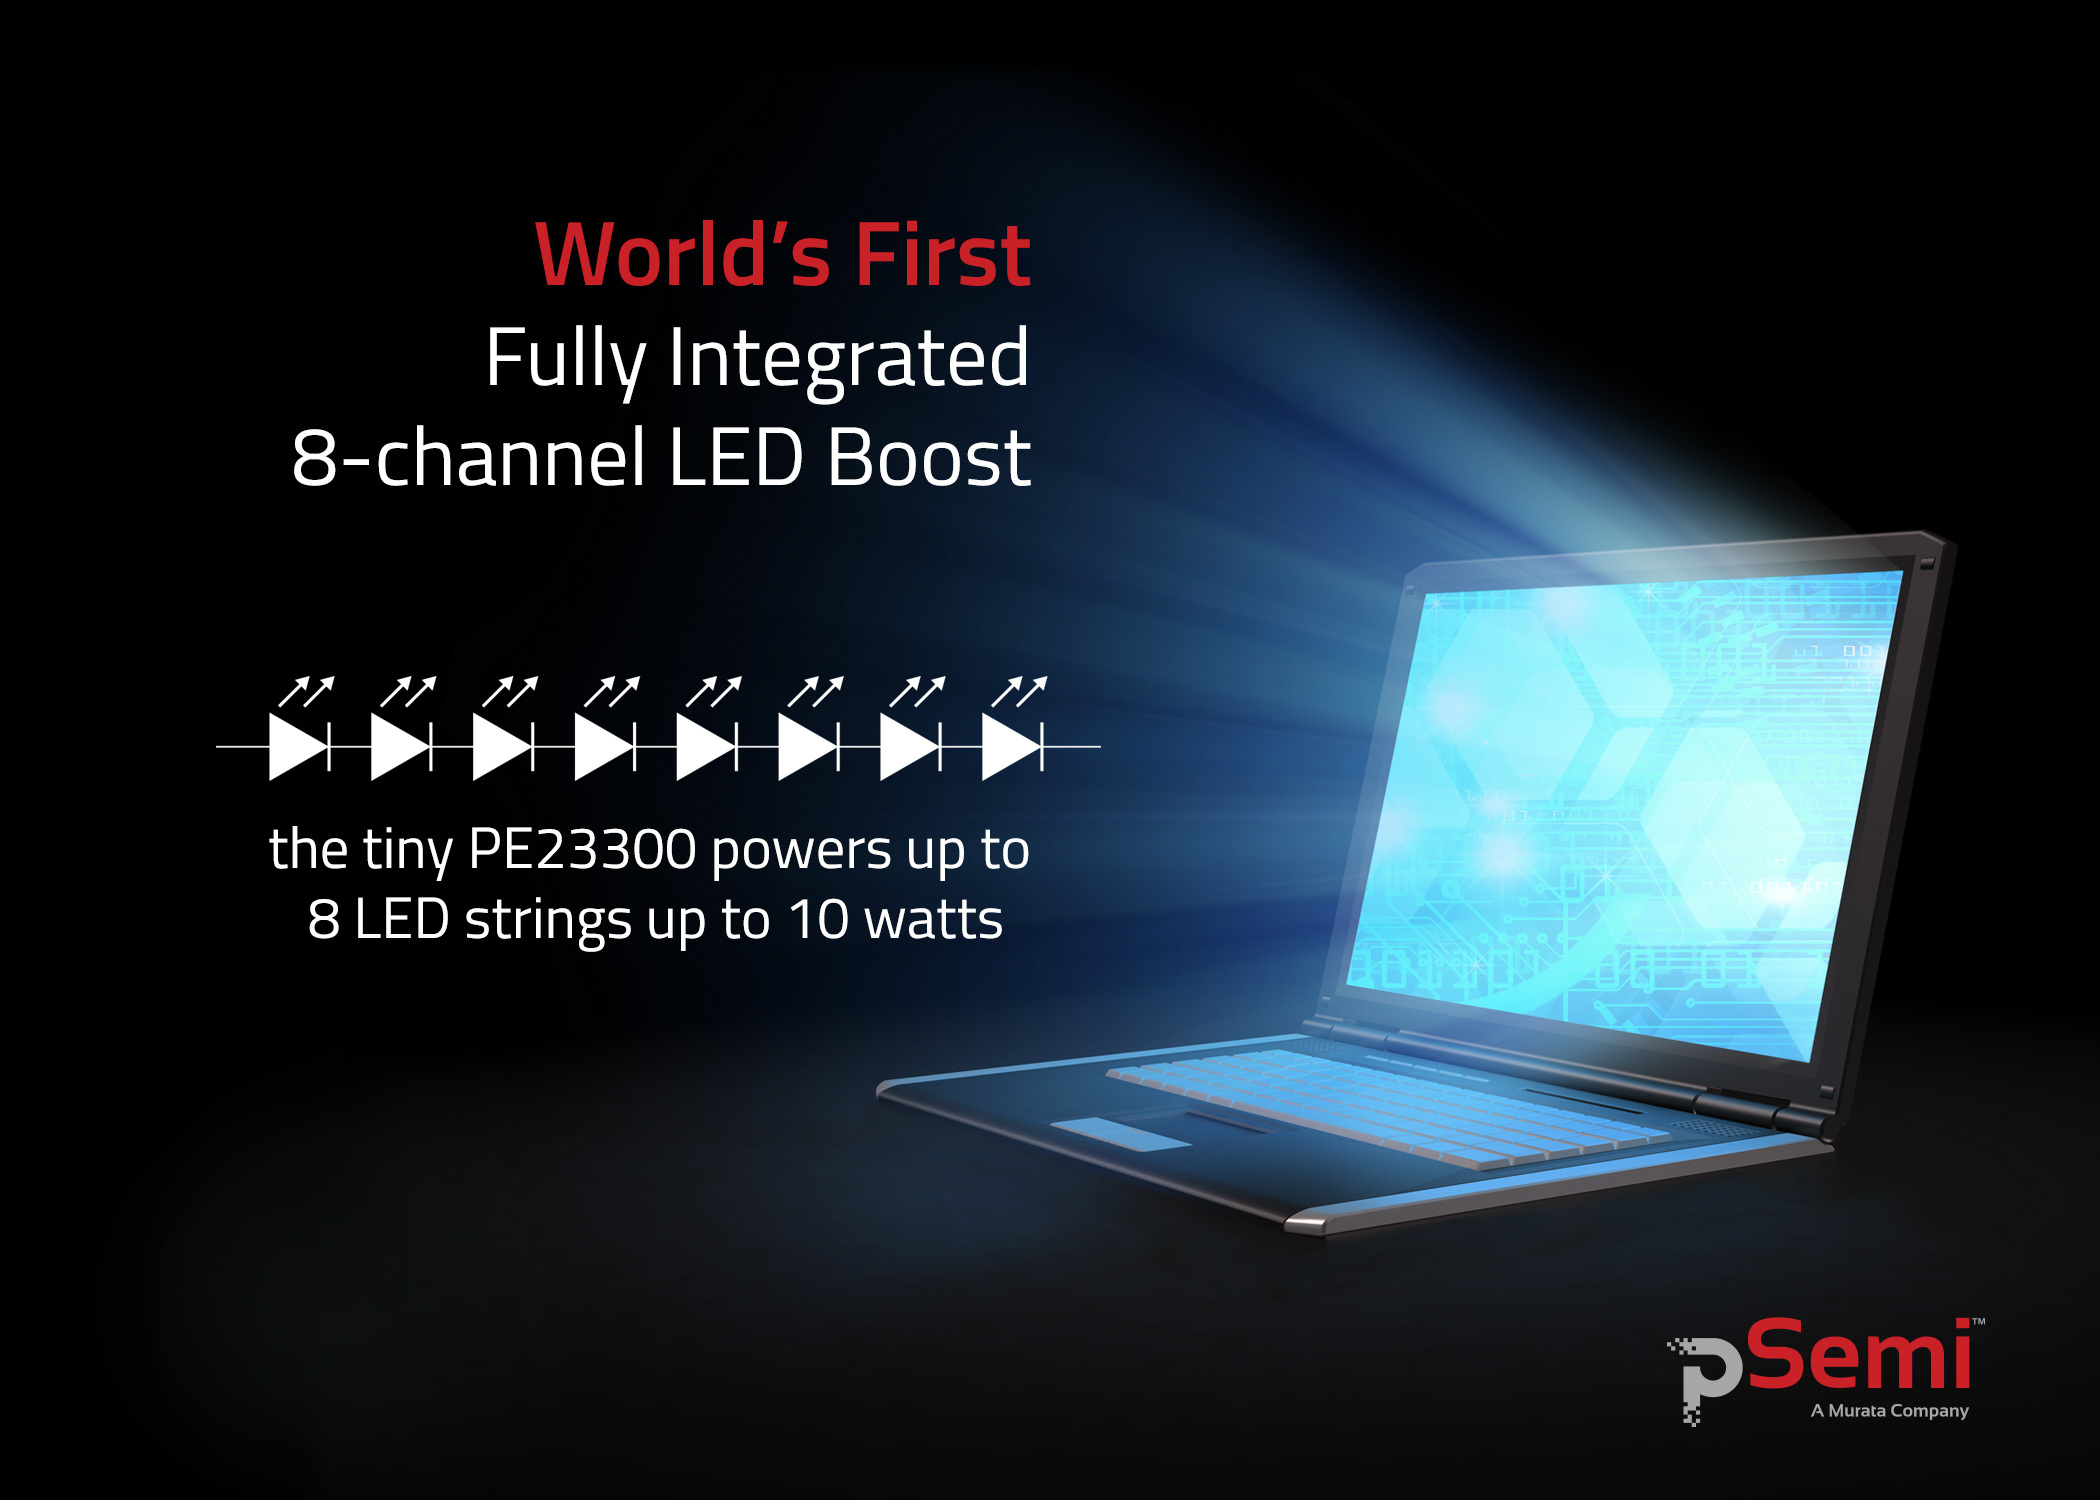 The World's First, Fully Integrated, 8-channel LED Boost Power Supply